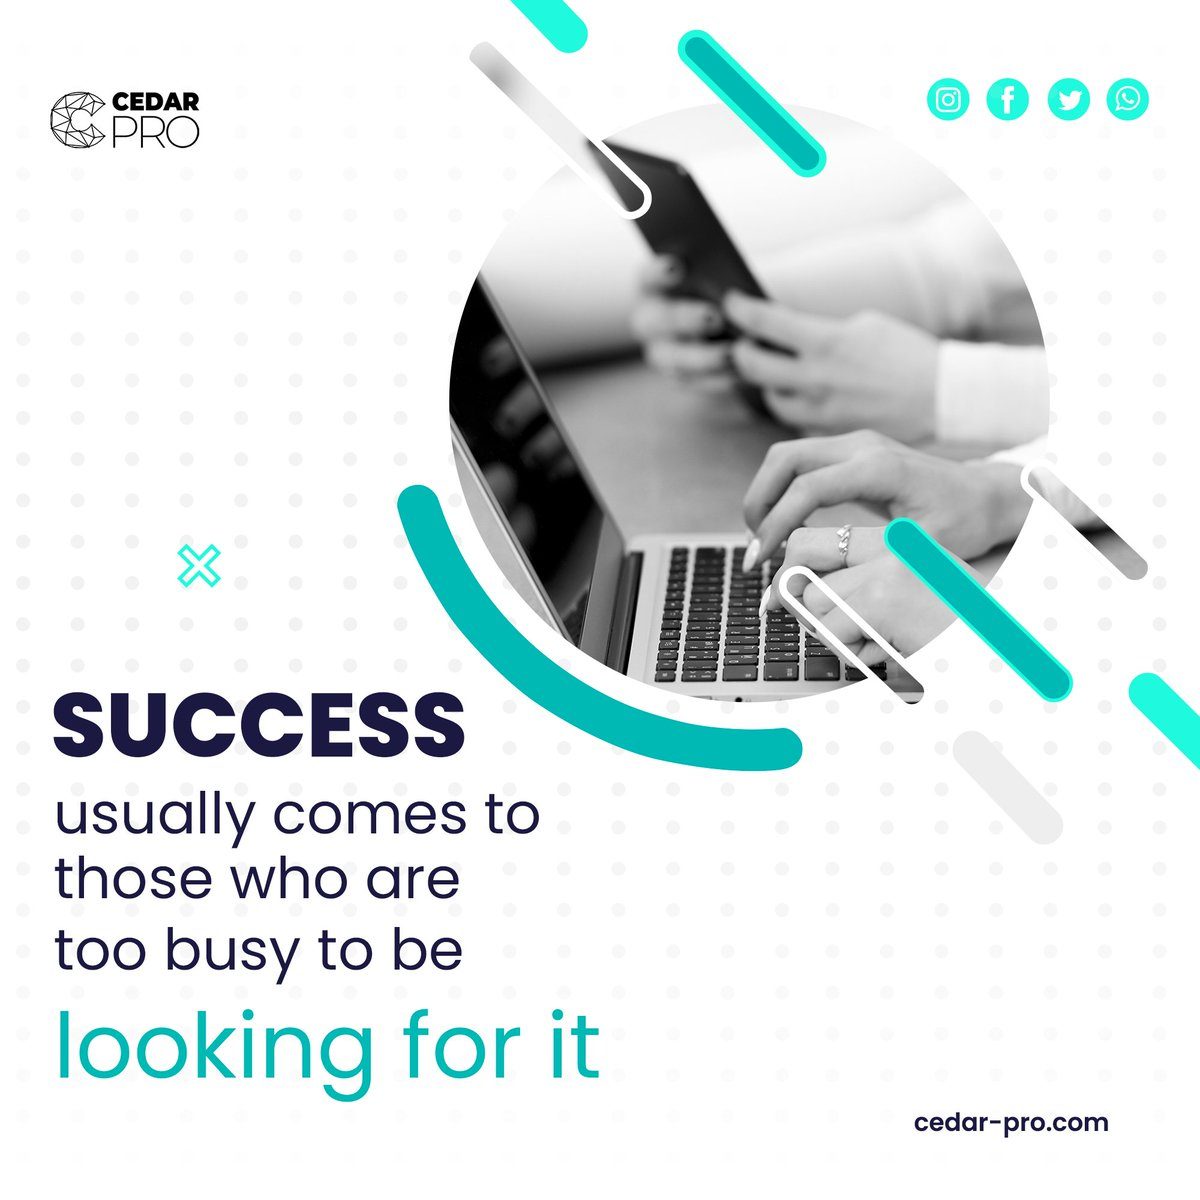 Success usually comes to those who are  too busy to be looking for it  #success #motivation #inspiration #love #life #motivationalquotes #quotes #mindset #believe #goals #lifestyle #positivevibes #happiness #entrepreneur #instagood #selflove #instagram